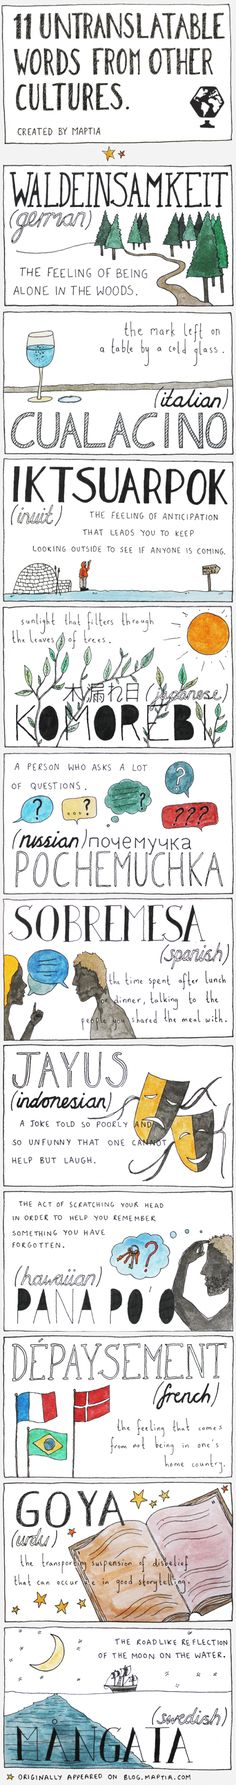 Love this - 11 Untranslatable Words From Other Cultures Infographic